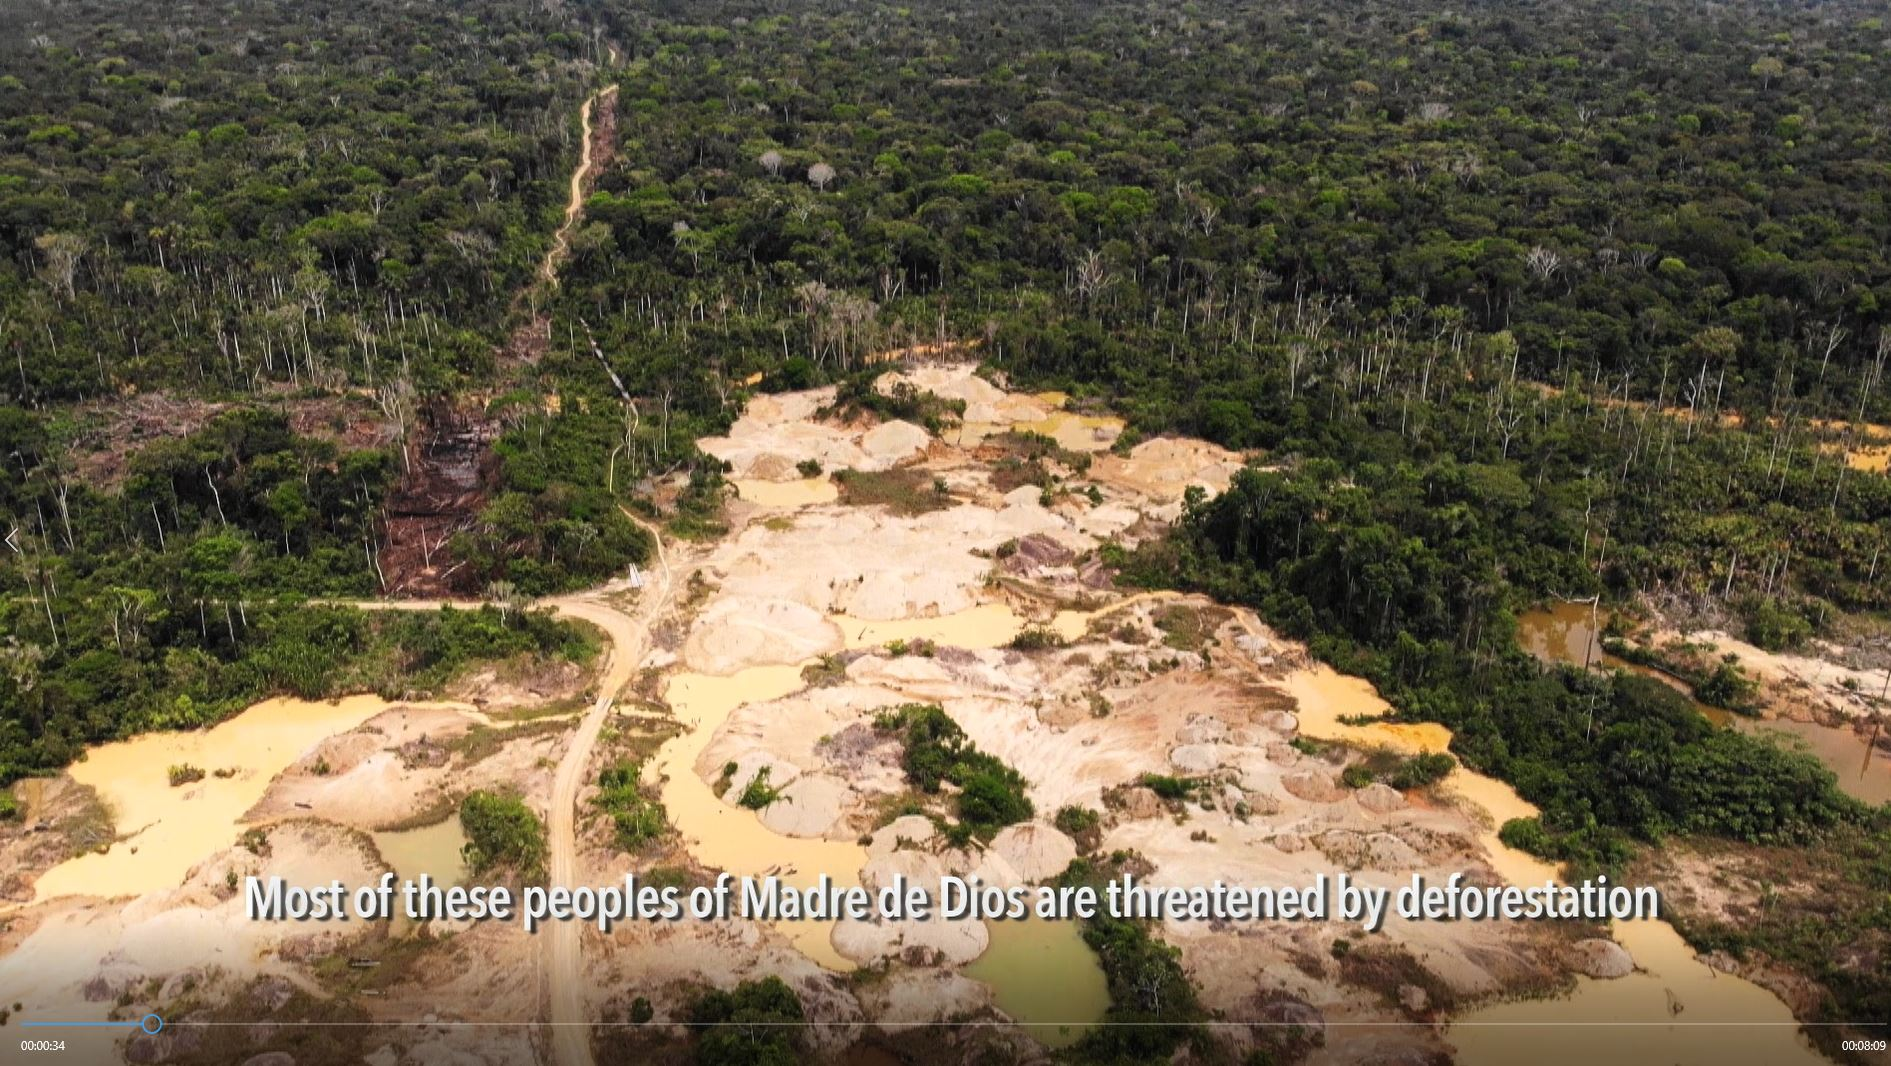 Threats against indigenous peoples living in Madre de Dios, Peru